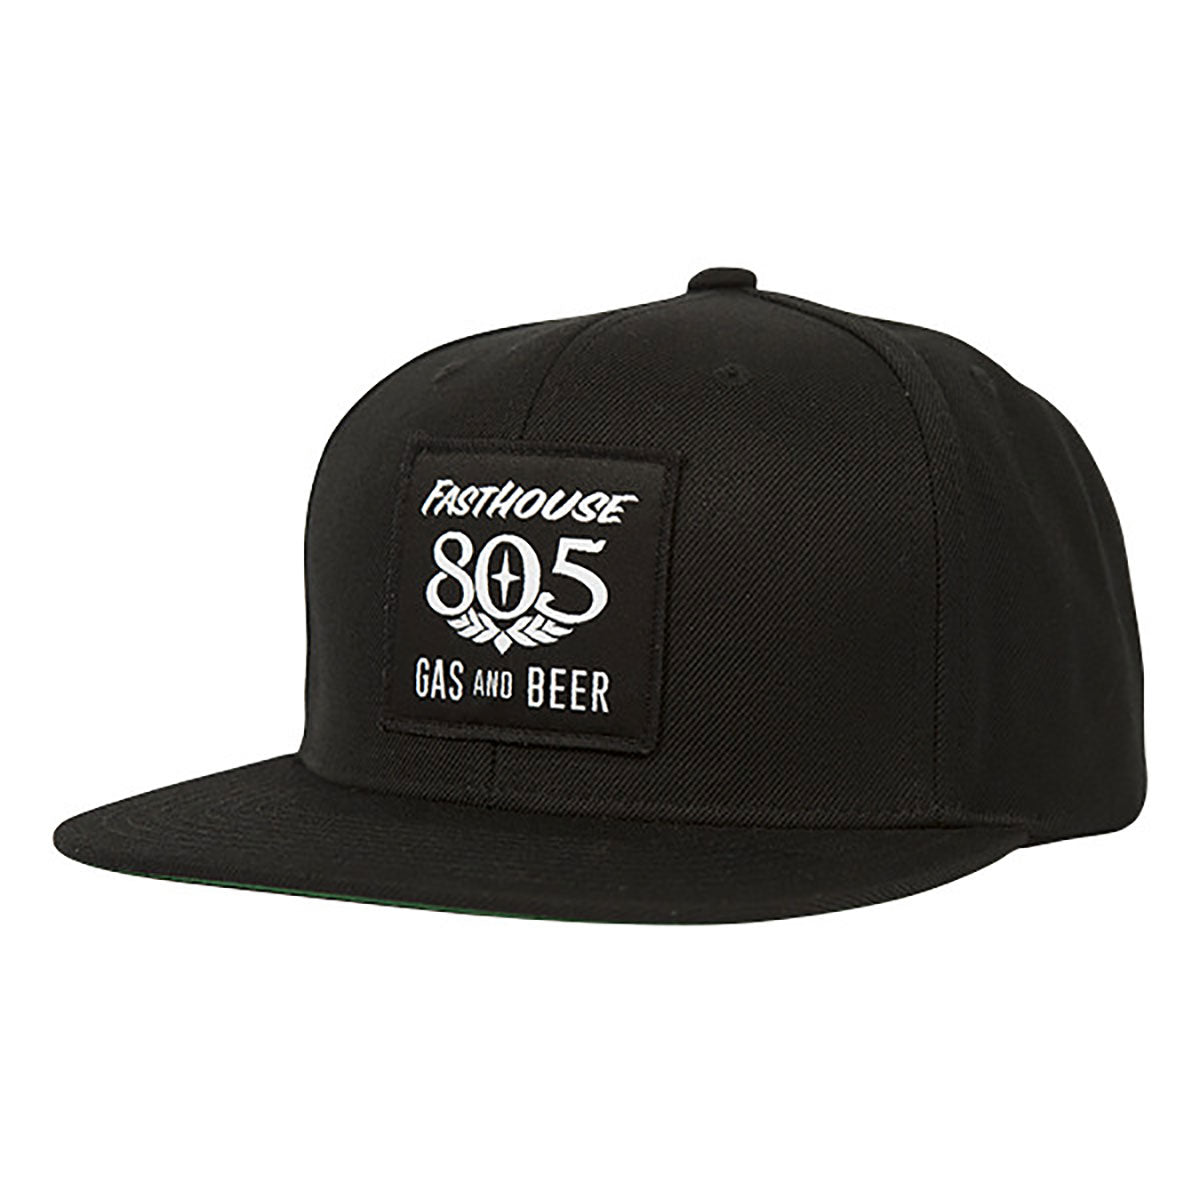 Fasthouse - 805 Hat - Black